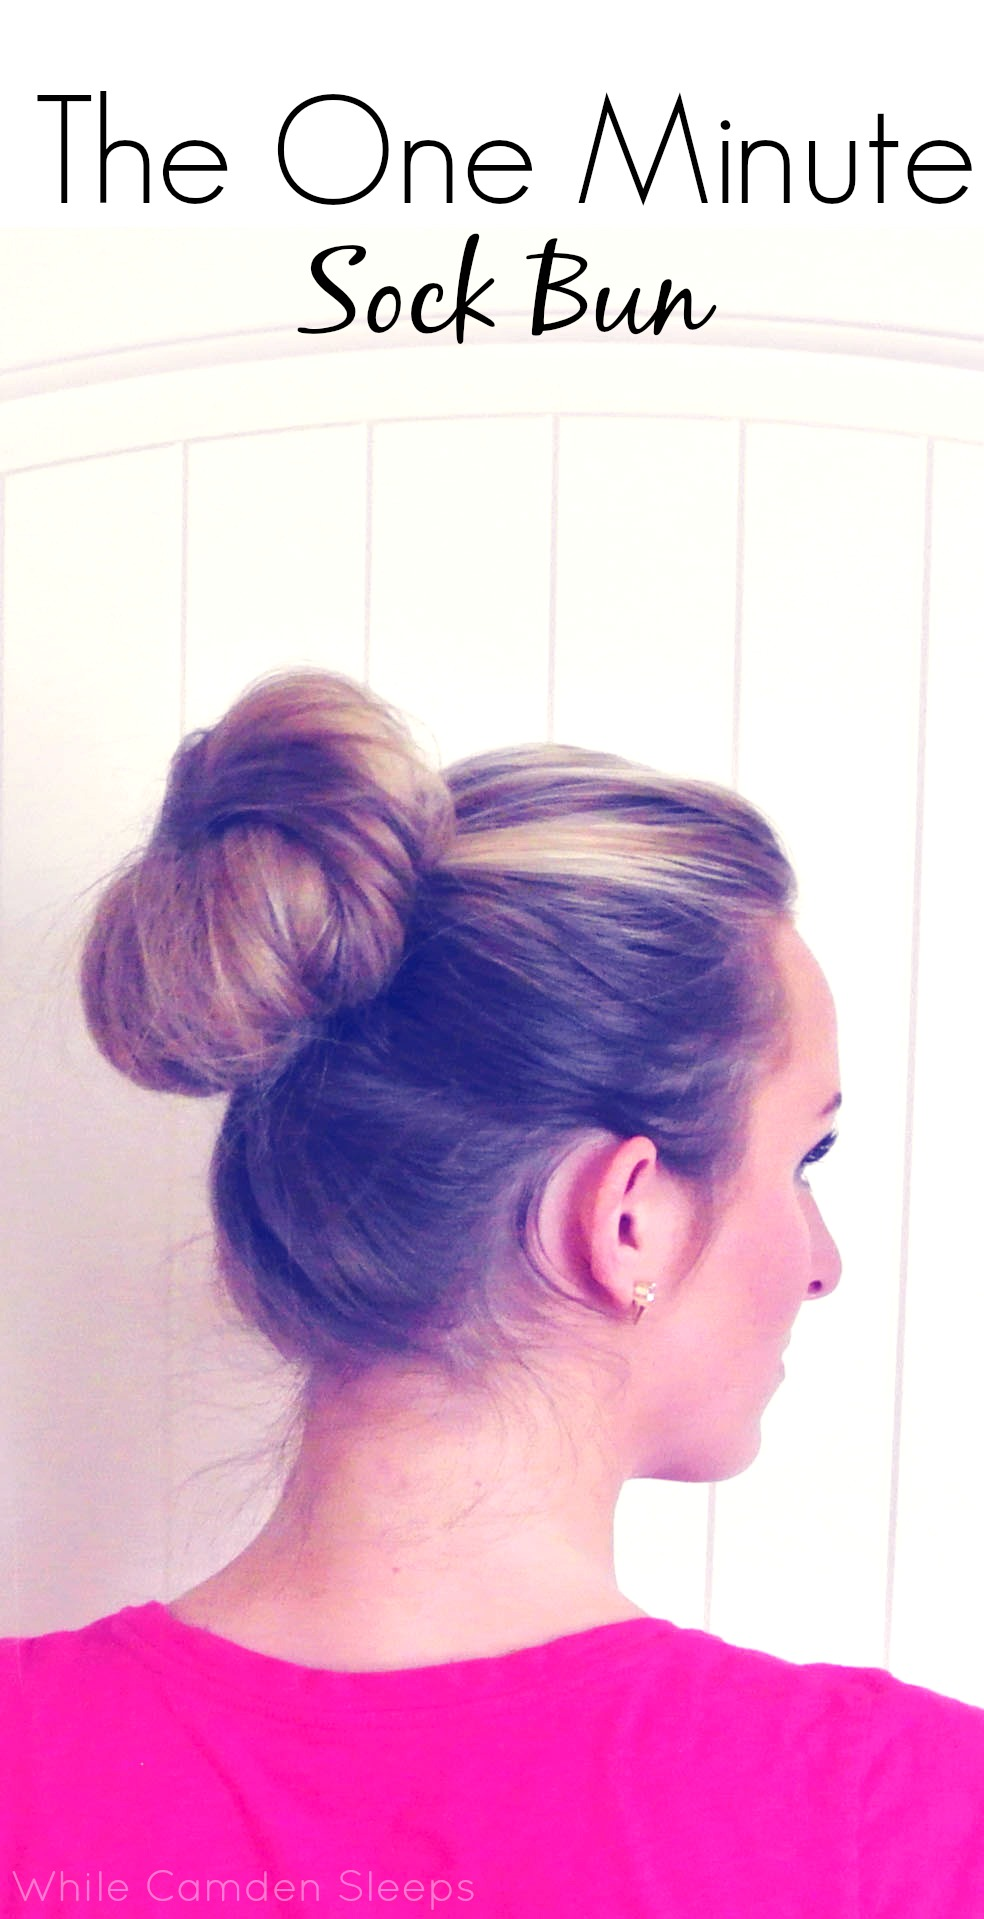 This sock bun literally takes less than a minute to do once the ponytail is done.  It saves me on mornings when I'm running late, yet still looks polished.  The tutorial video is only a minute and a half and she doesn't speed any of it up.